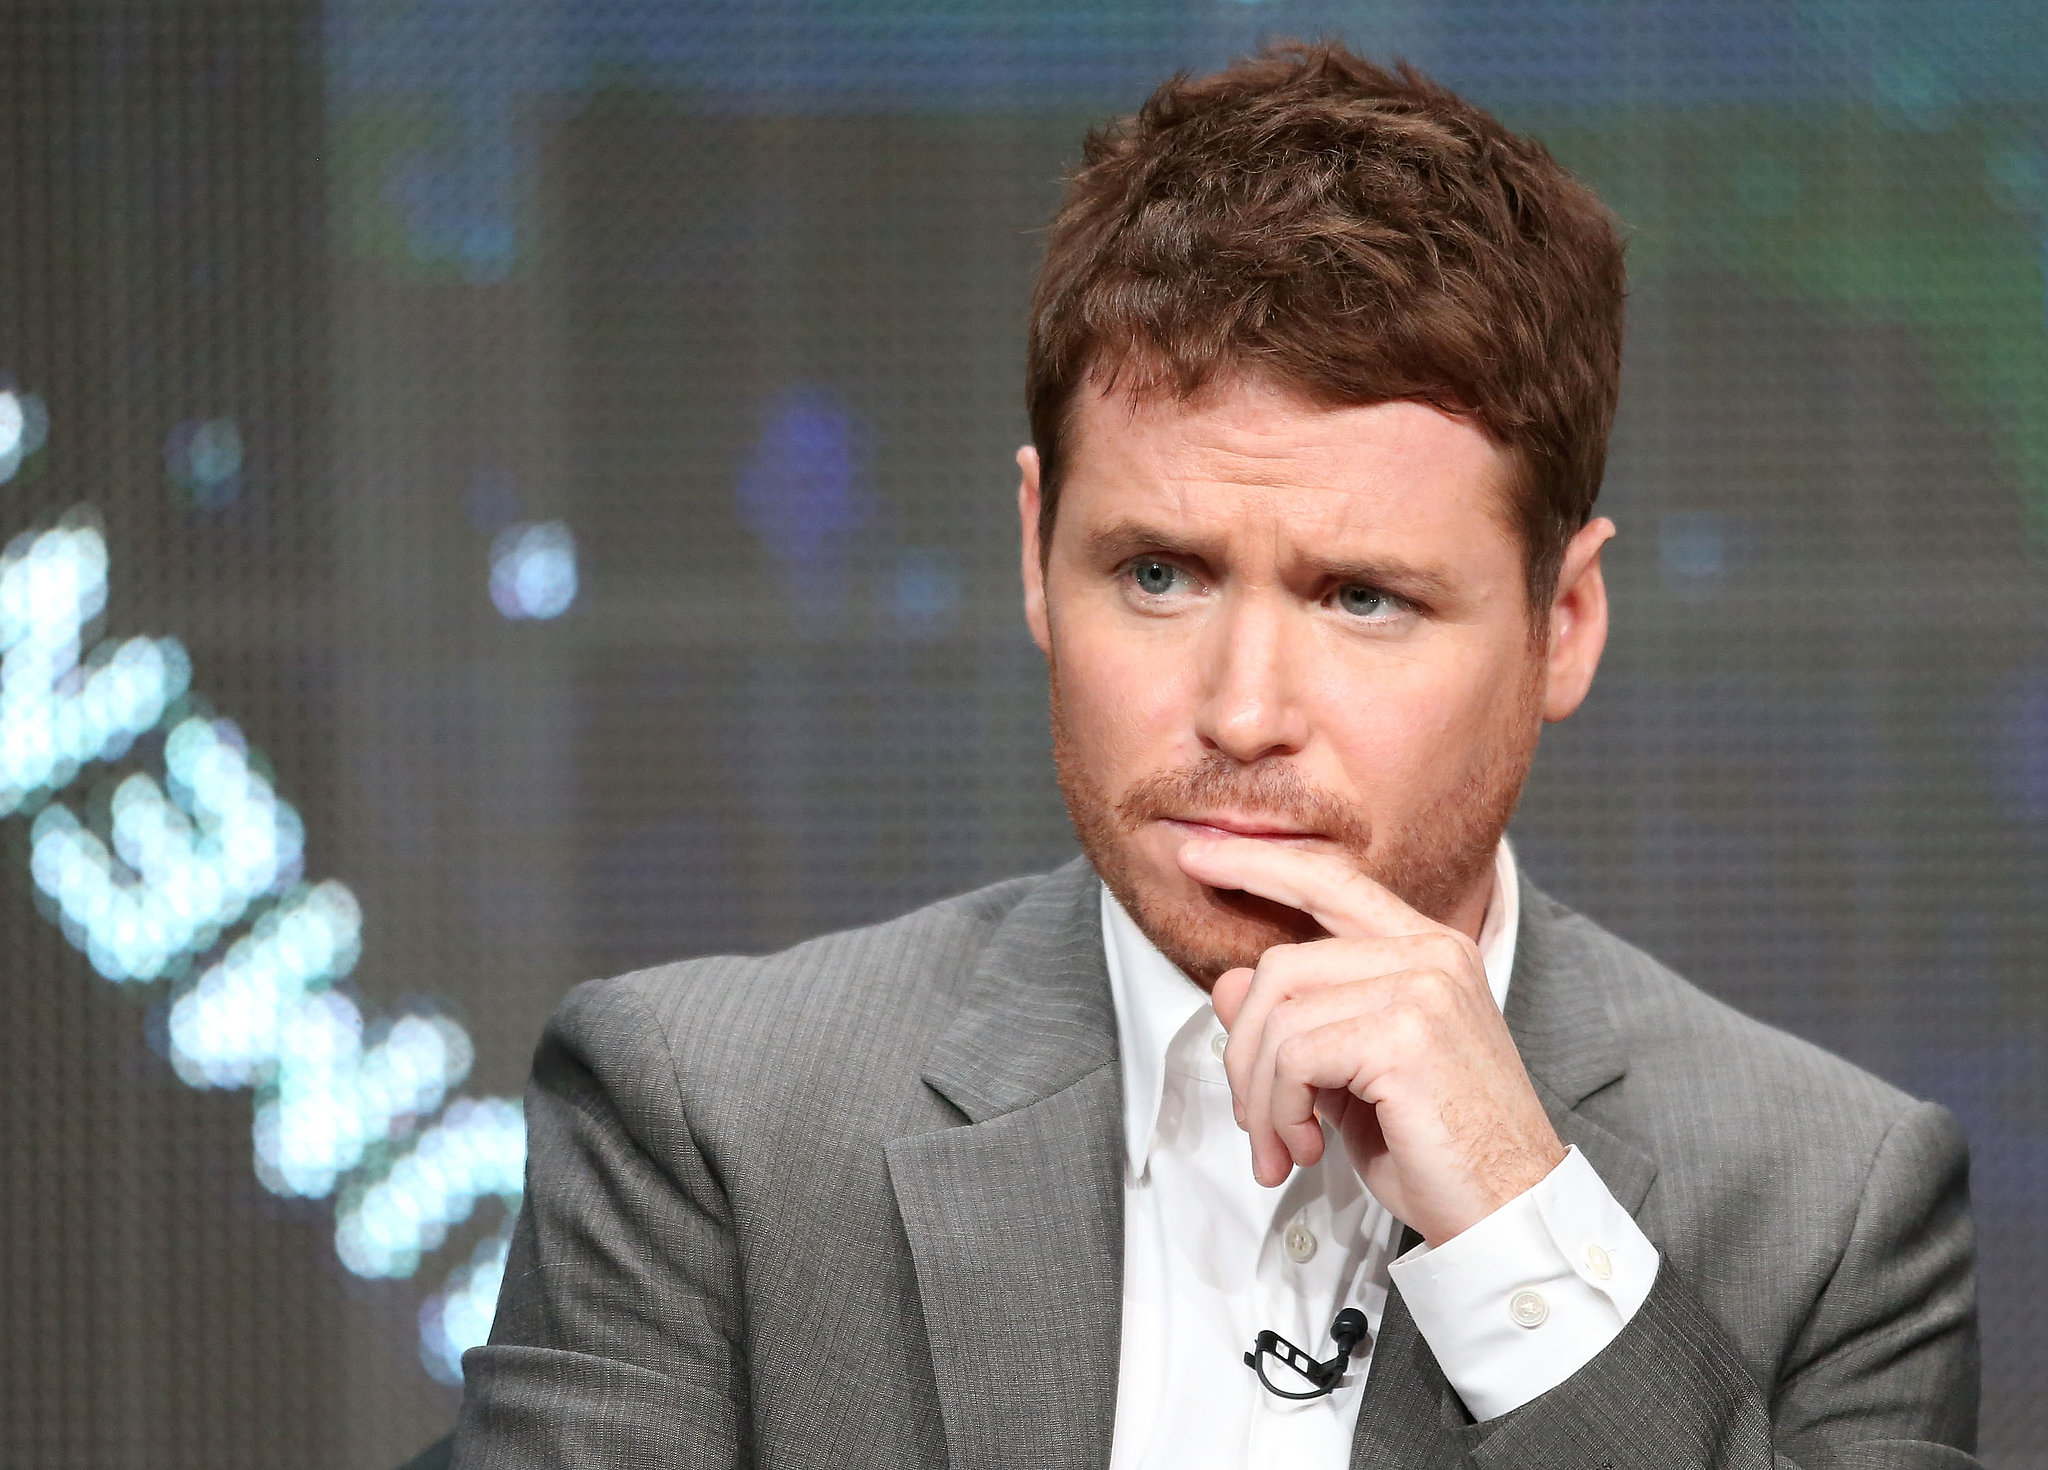 Kevin Connolly spoke on stage during the 30 for 30 panel.